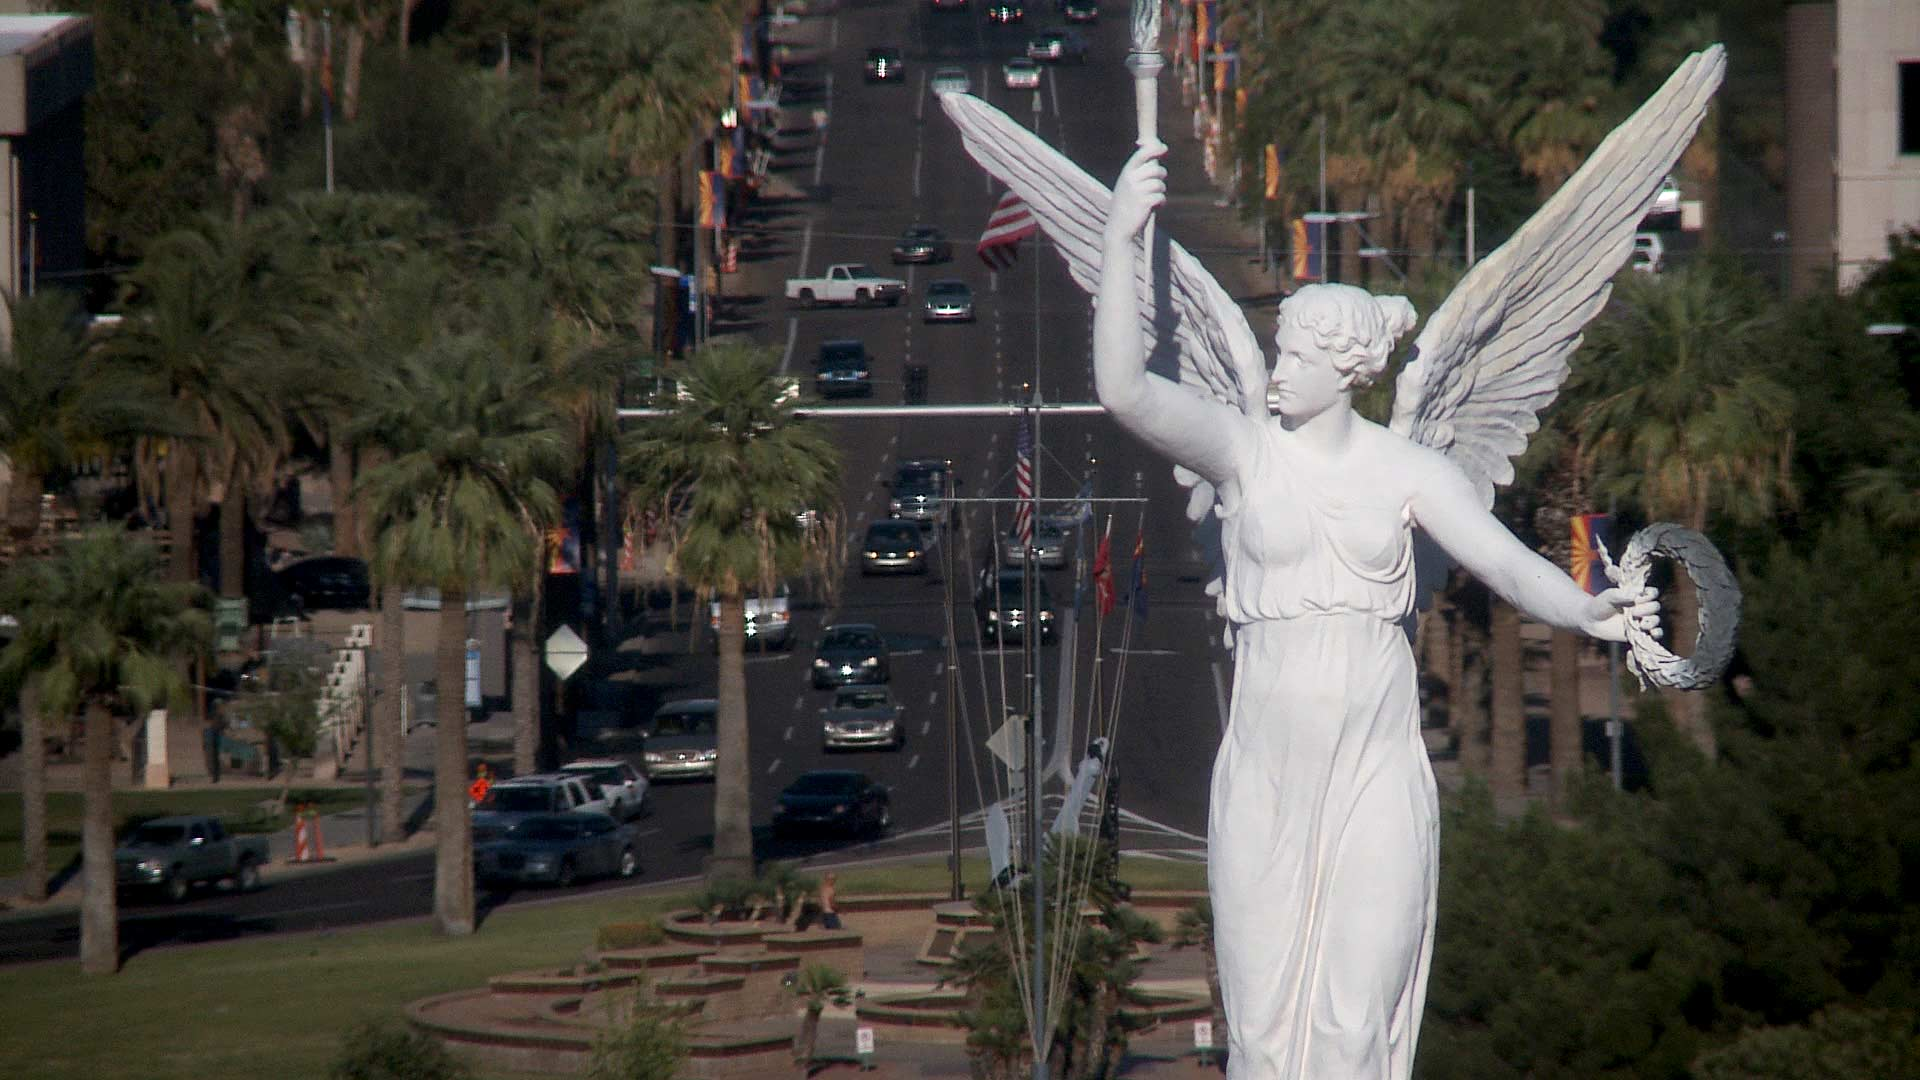 File image of the Winged Victory weather vane atop the copper dome at the historic Capitol Building in Phoenix.